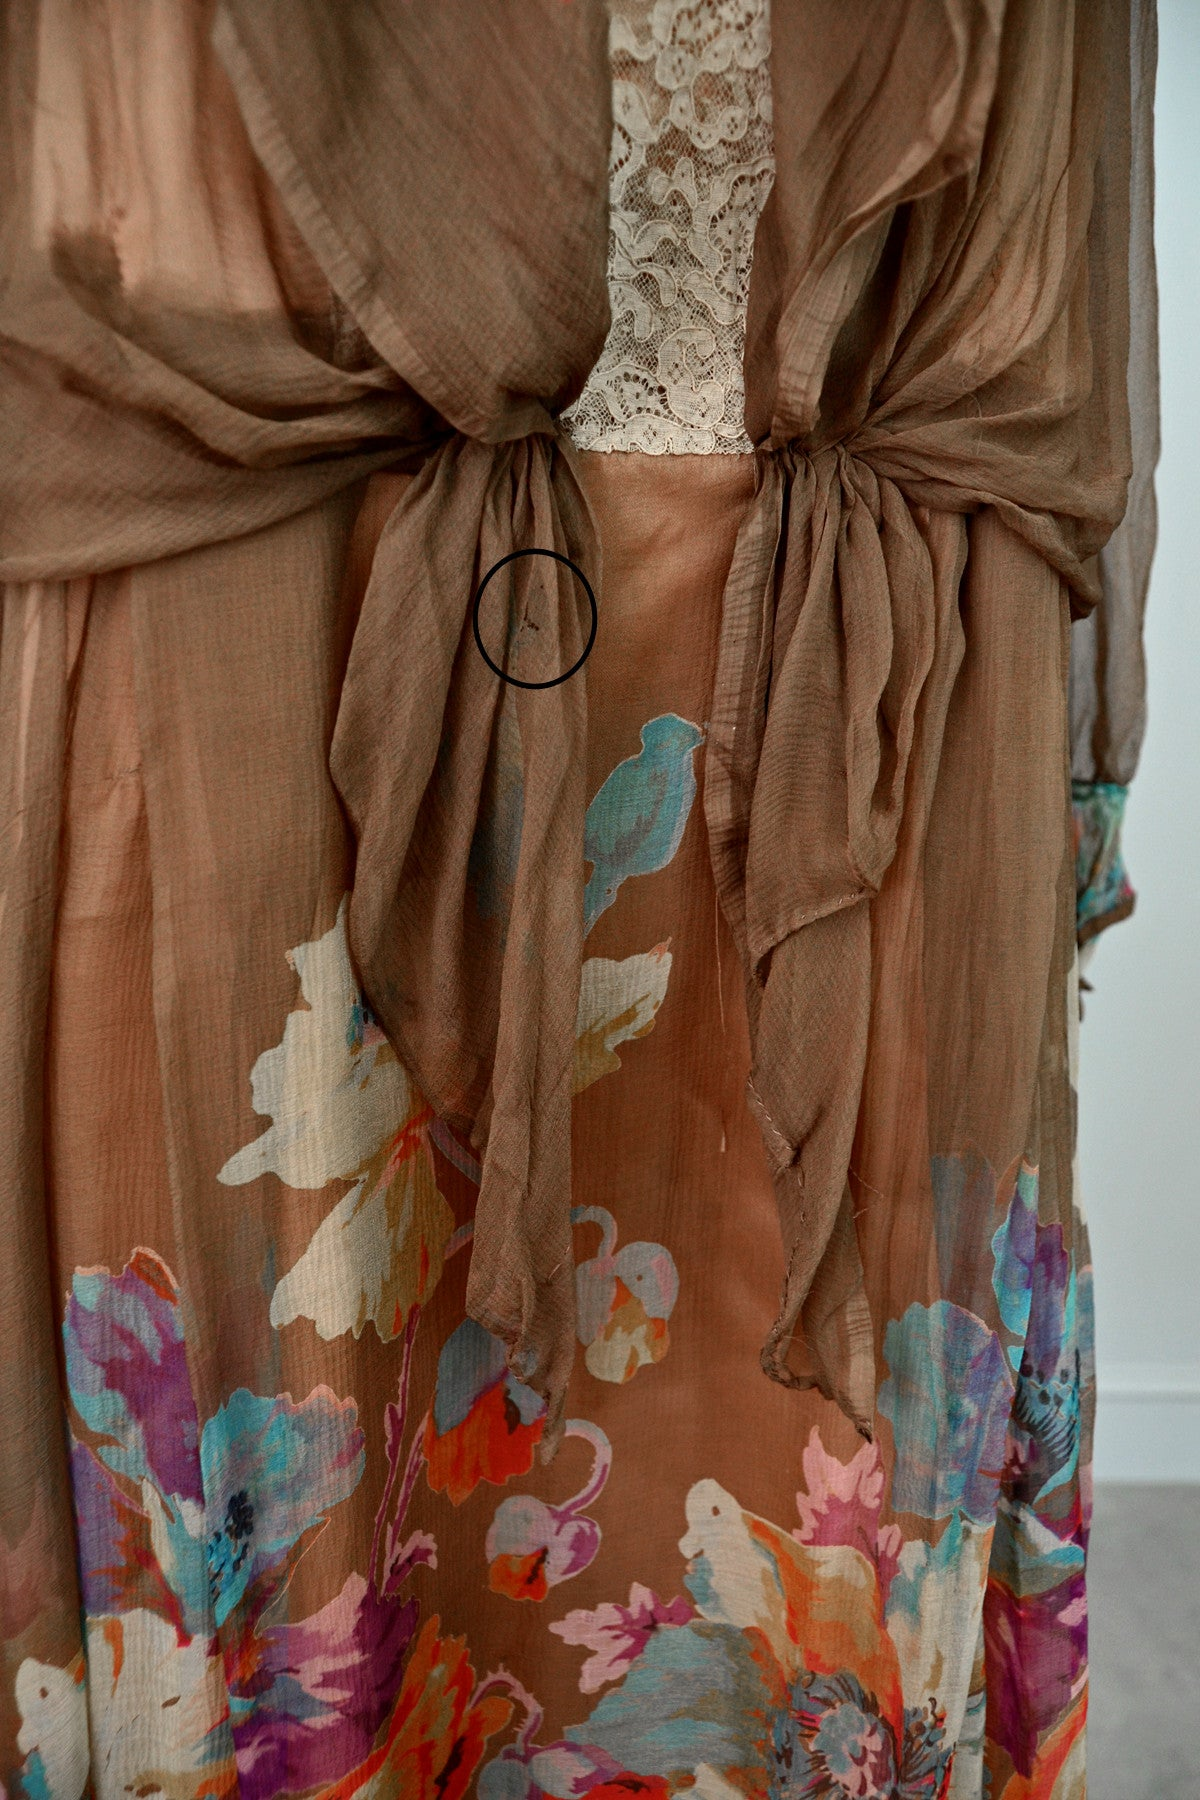 1920s Mocha Chiffon and Lace Vintage Flapper Dress with Vibrant Floral Print